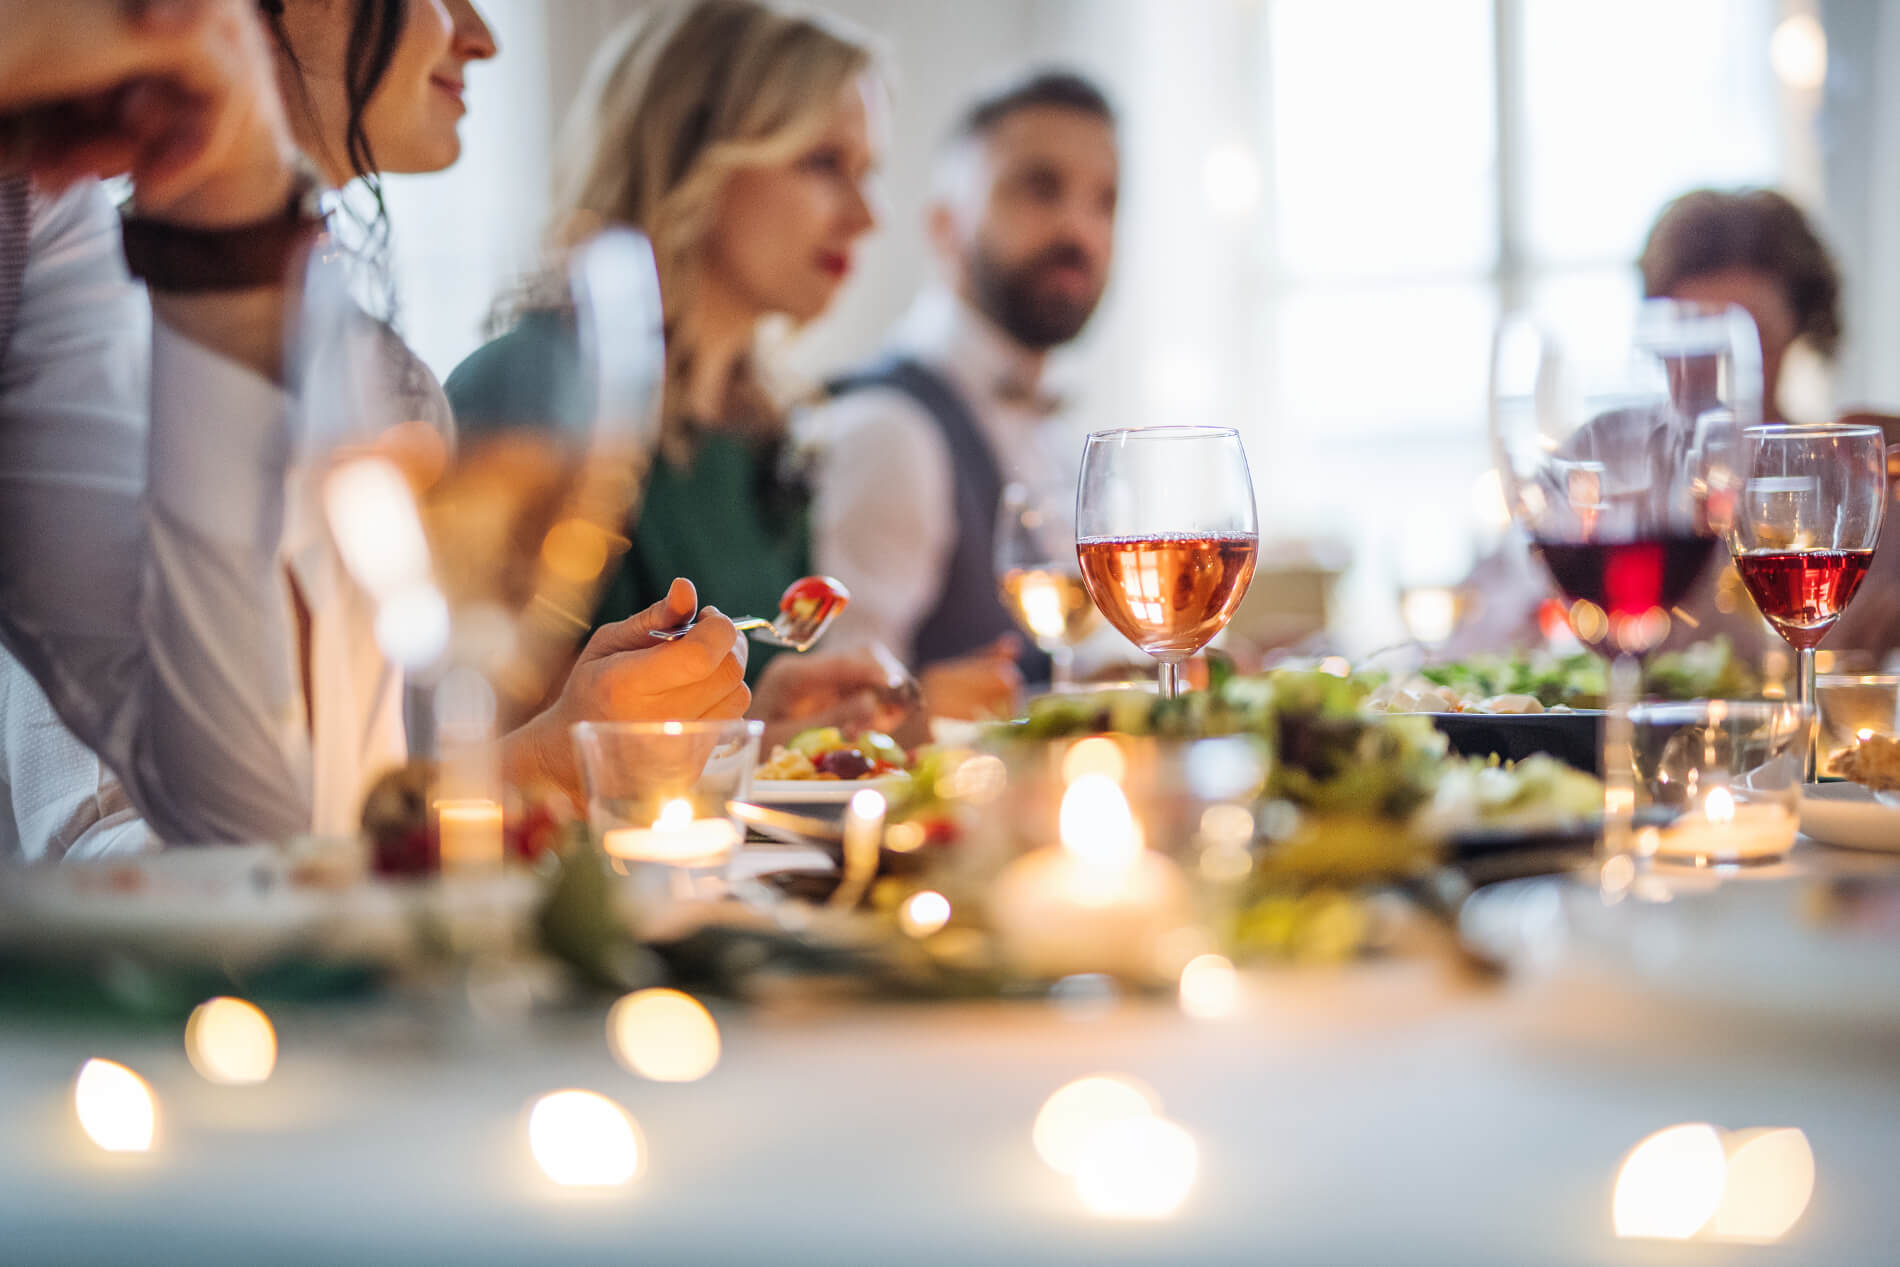 Several friends around festive table with food and wine